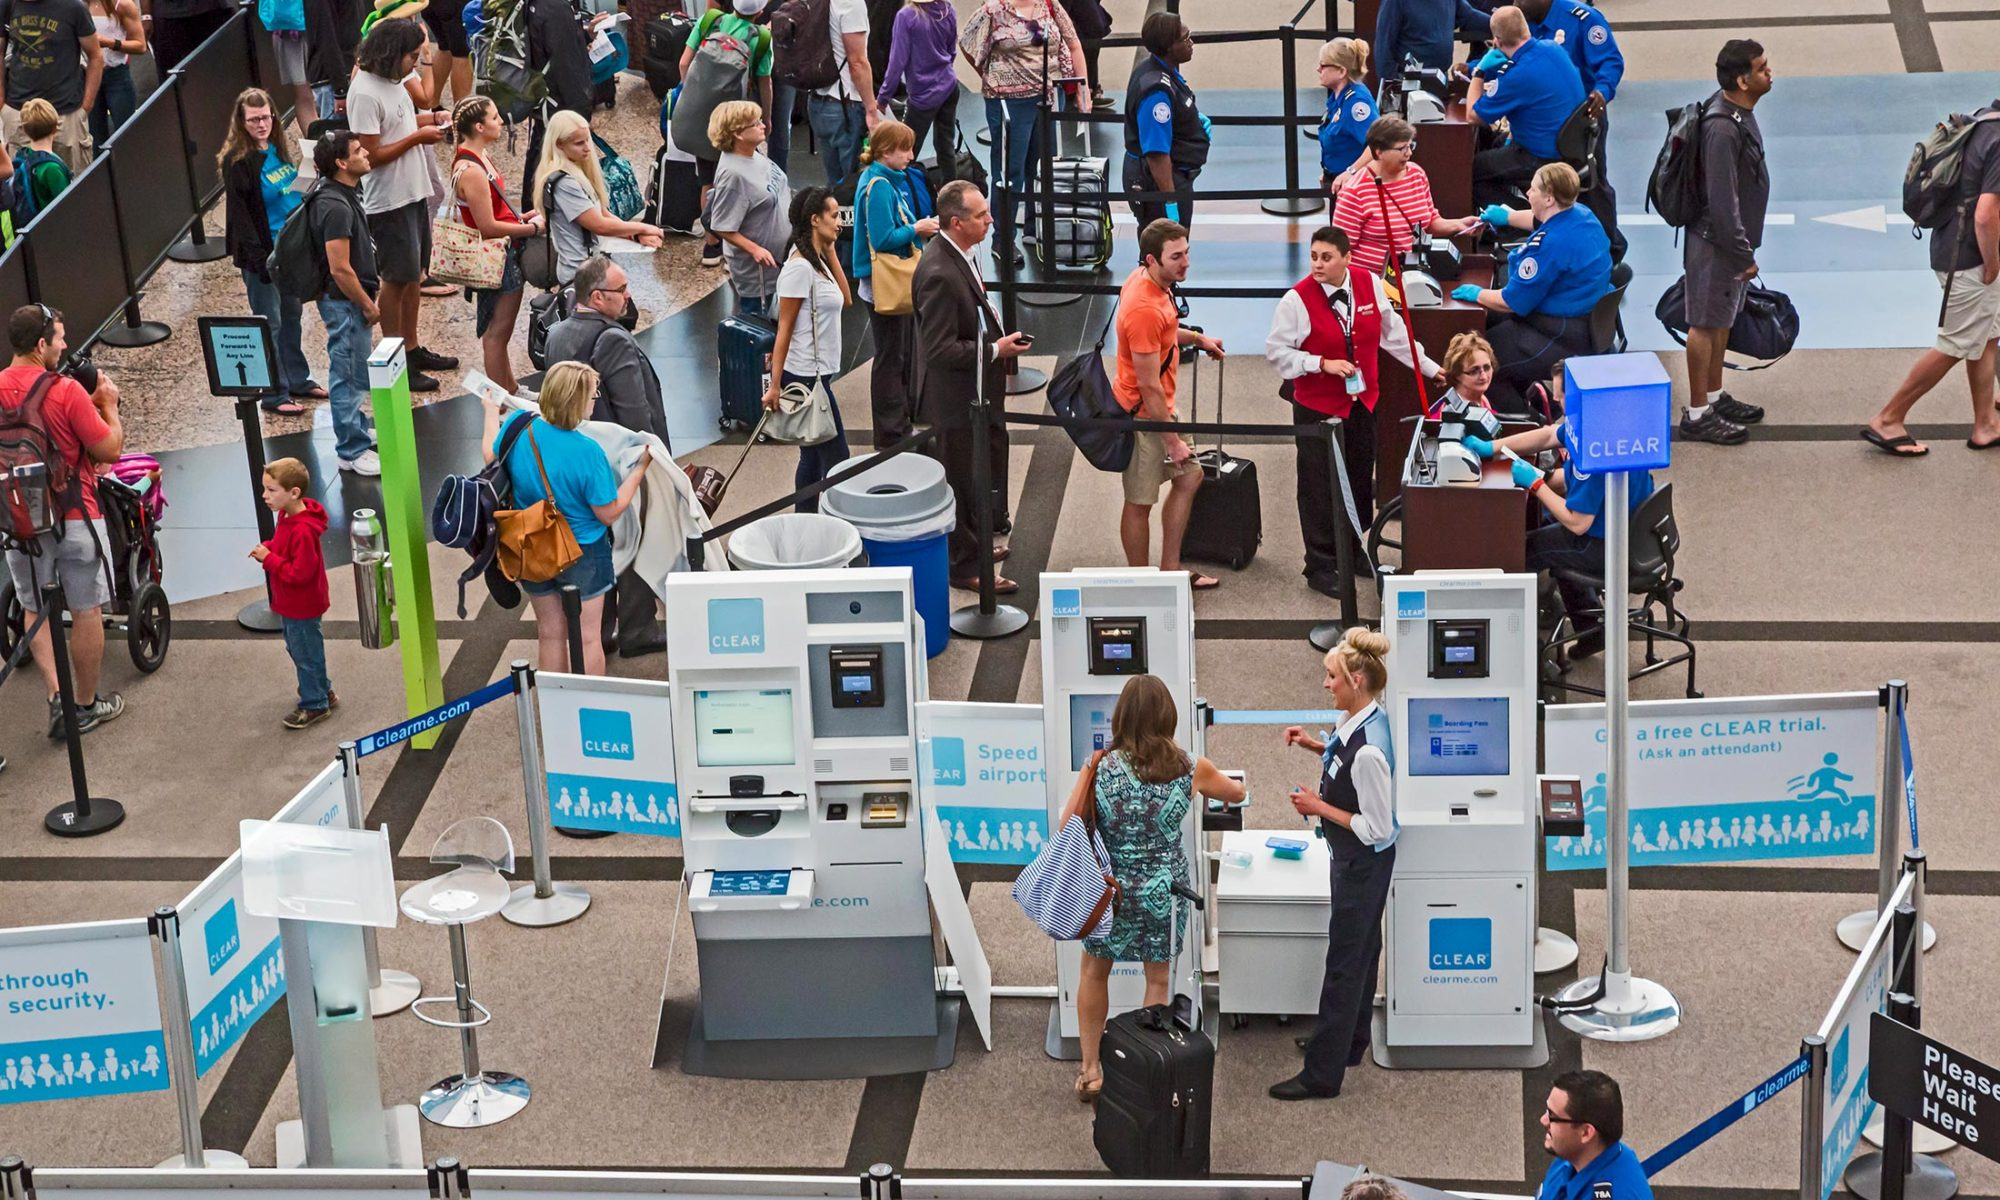 Denver, Colorado, Security screening of passengers Denver International Airport, security screening area Jeppesen Terminal *** Local Caption *** air transport air travel airport arriving,arrival aviation bag,bags busy check,checking CLEAR CLEARme Colorado concourse crowd,crowded Denver Denver International Airport EBF,Economy homeland security luggage,bag,bags machine,machinery,machines man,men passenger passenger,passengers passengers private privilege queue,queuing screening SCT,Technology search,searching security Security Guard,security guards security screening system Transportation Security Administration travel traveler travelers TSA USA wait,waiting woman,women worker,workers x-rays,xrays,x ray,xray,x rays